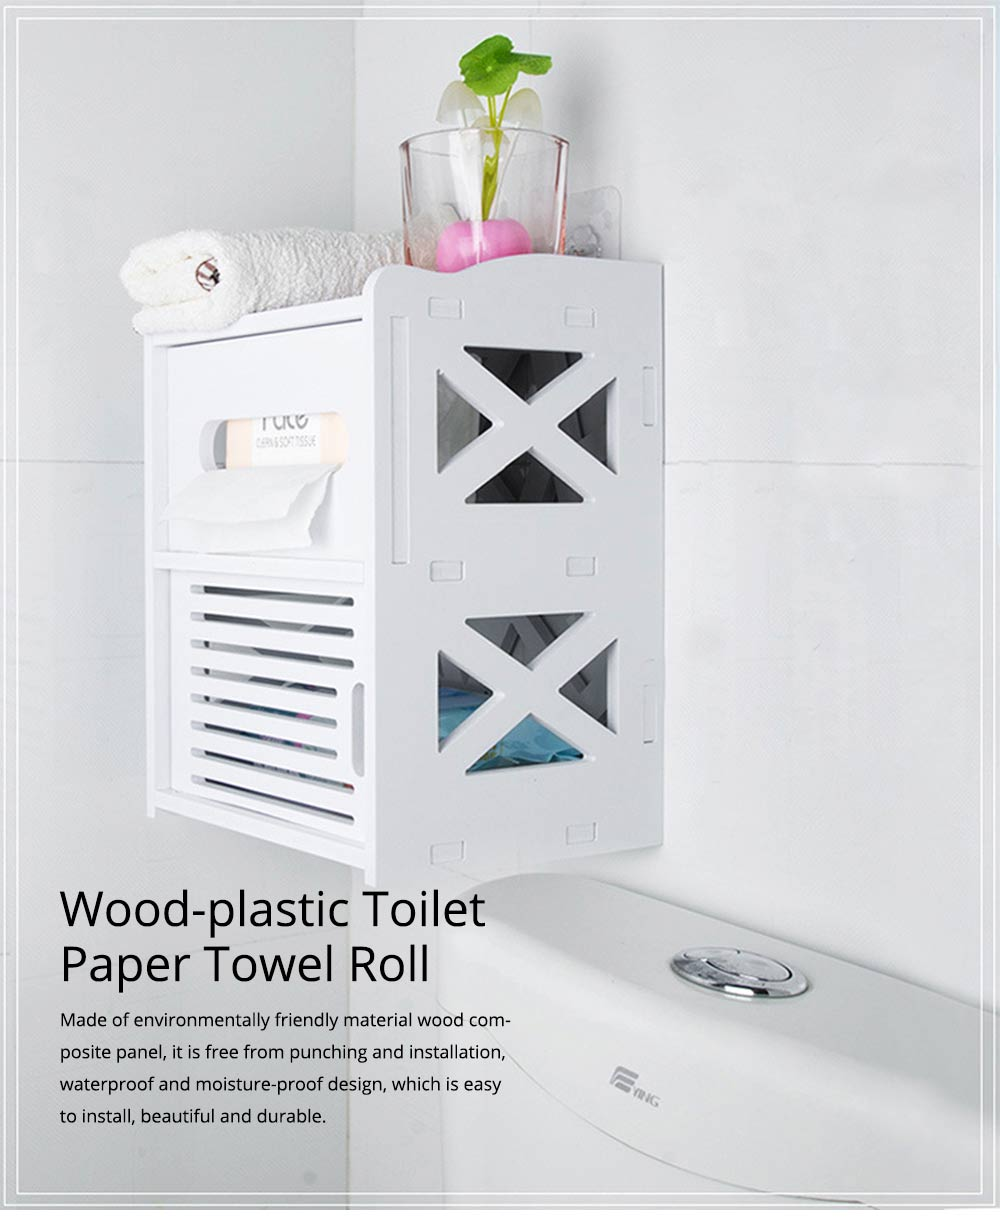 Wood-plastic Toilet Paper Towel Roll, Bathroom Roll Toilet Paper Rack 0